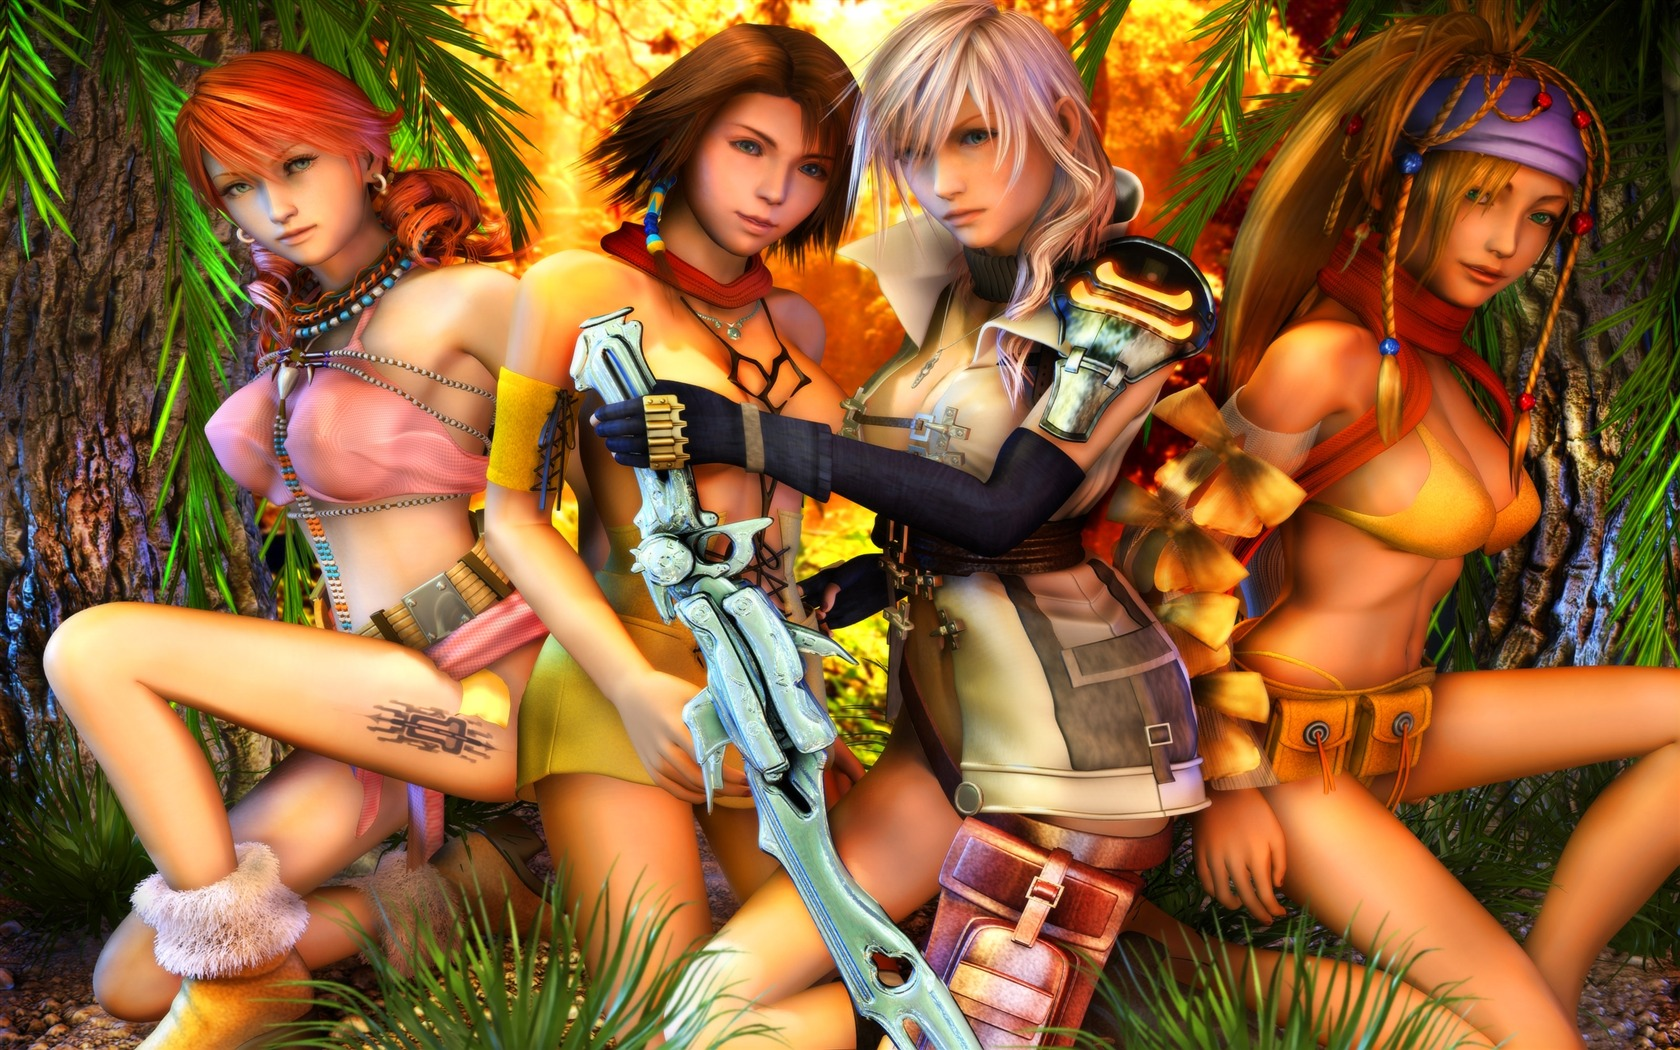 Girls sexy classic game final fantasy wallpaper preview - Fantasy game wallpaper ...